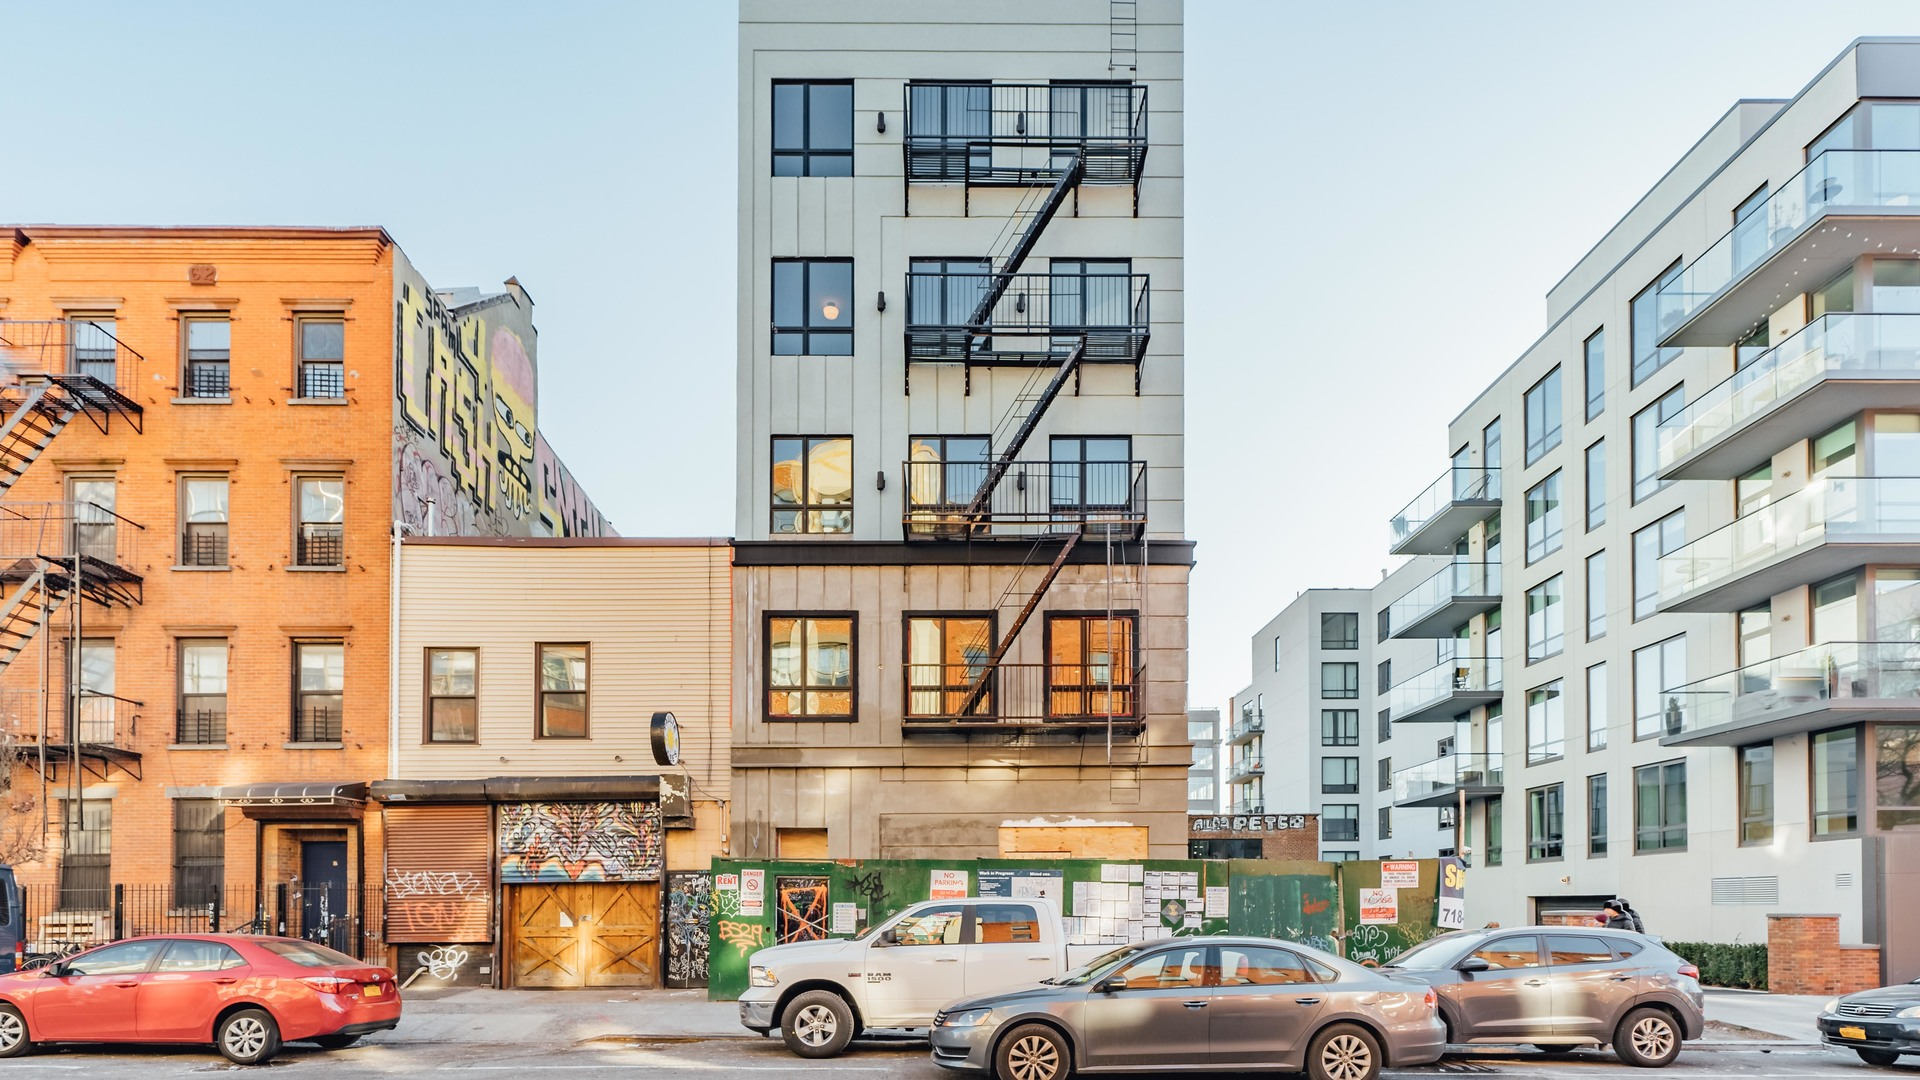 013 001 58 greenpoint ave 13